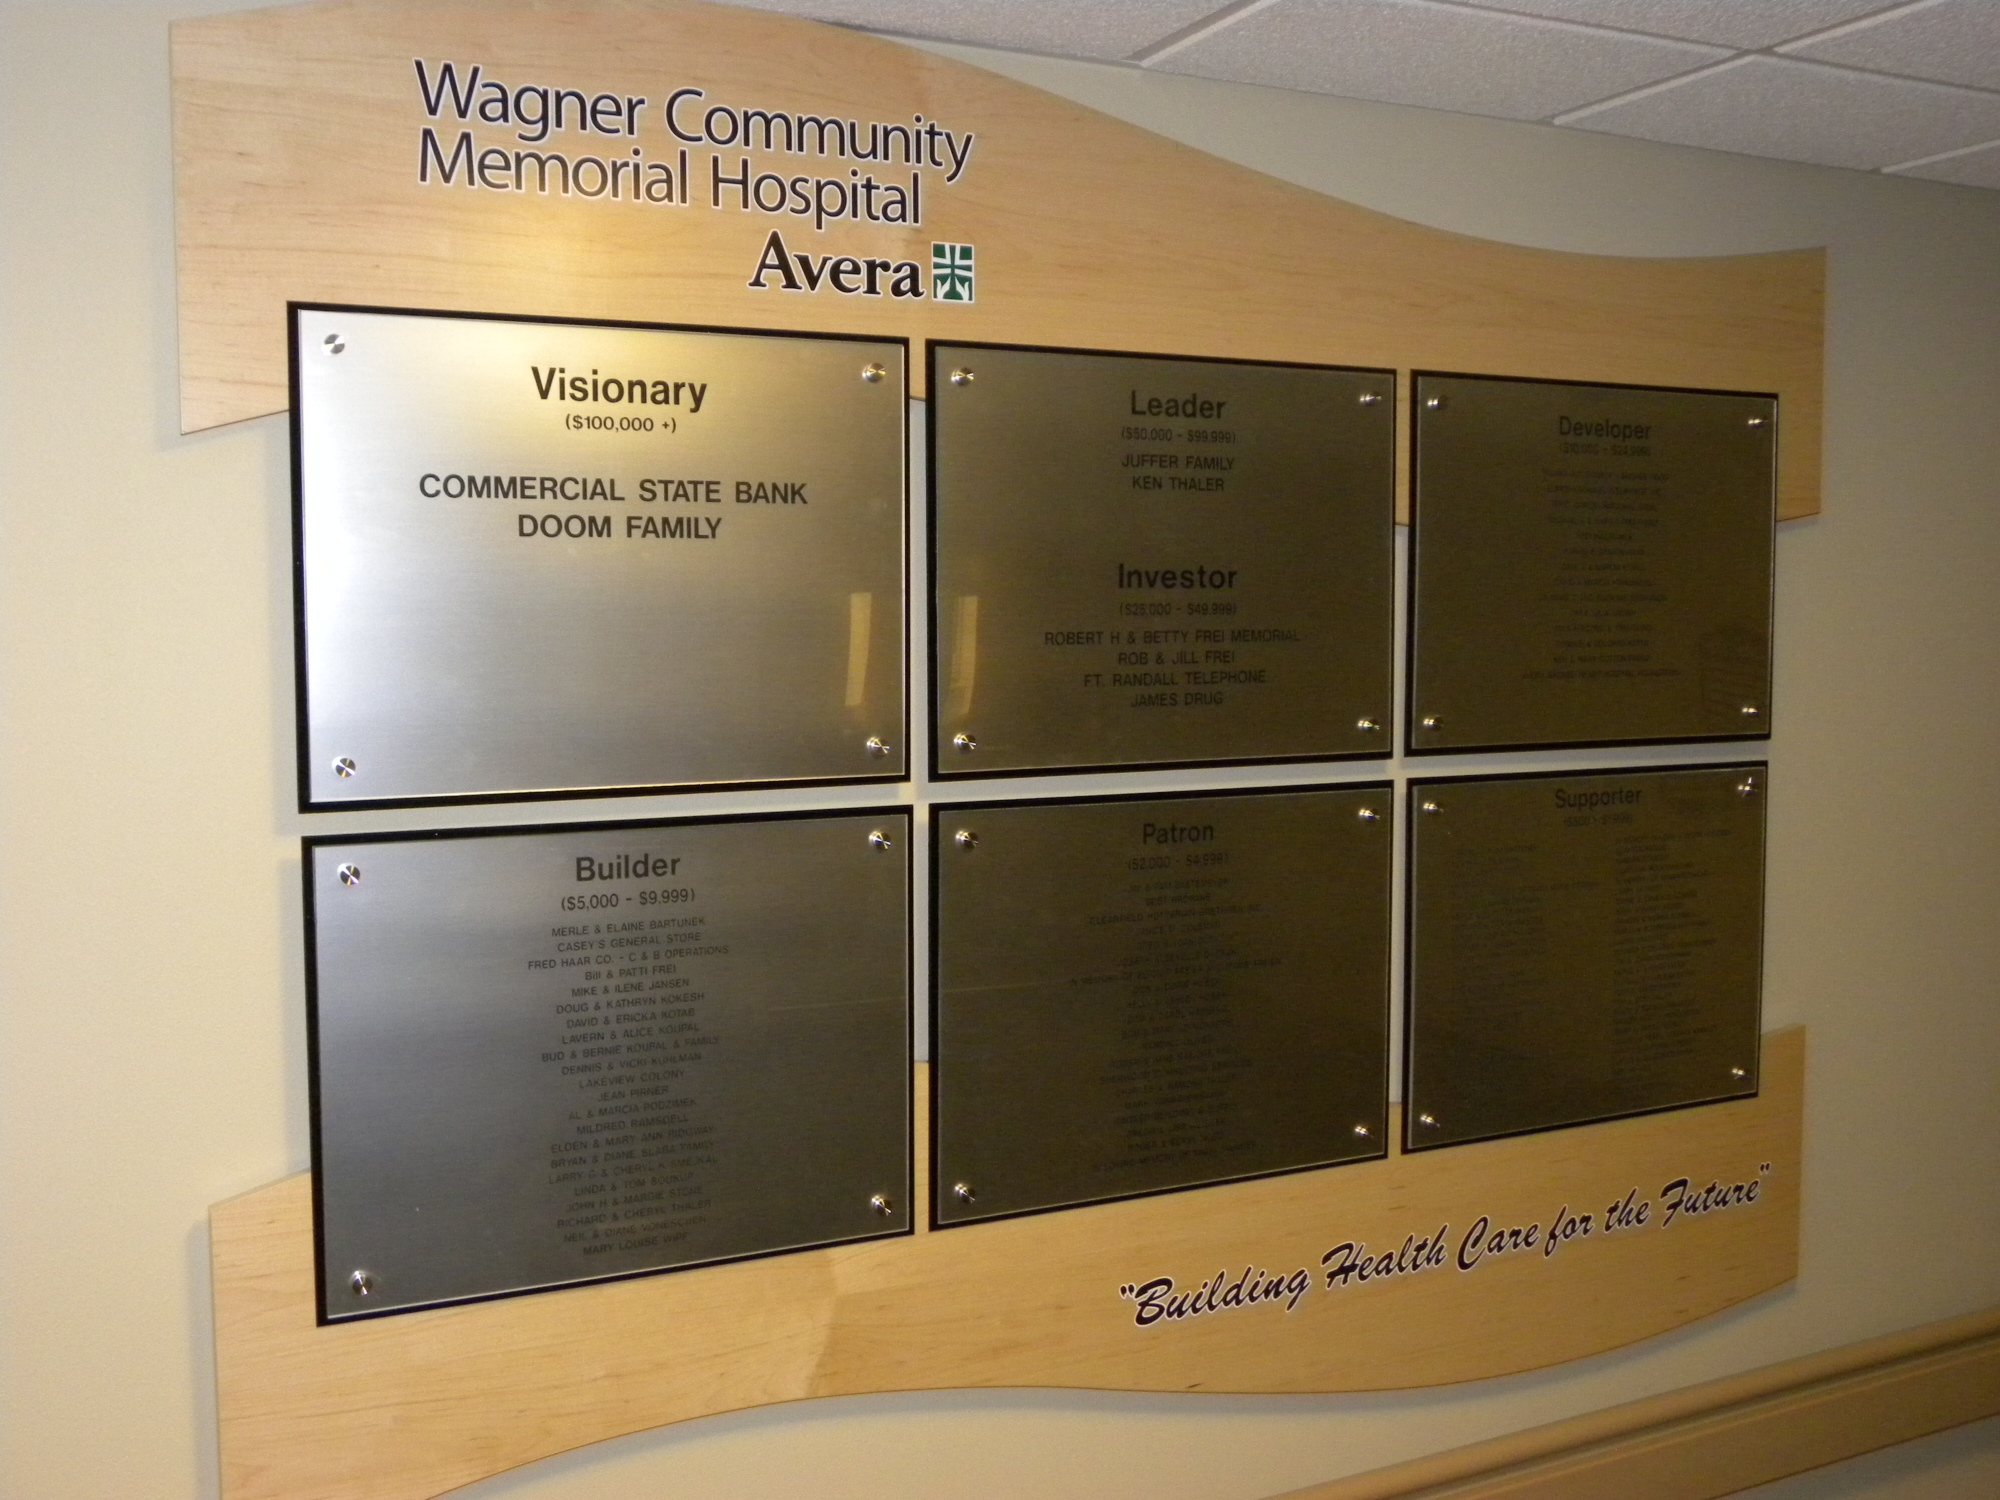 Wagner Community Memorial Hospital Donor Wall